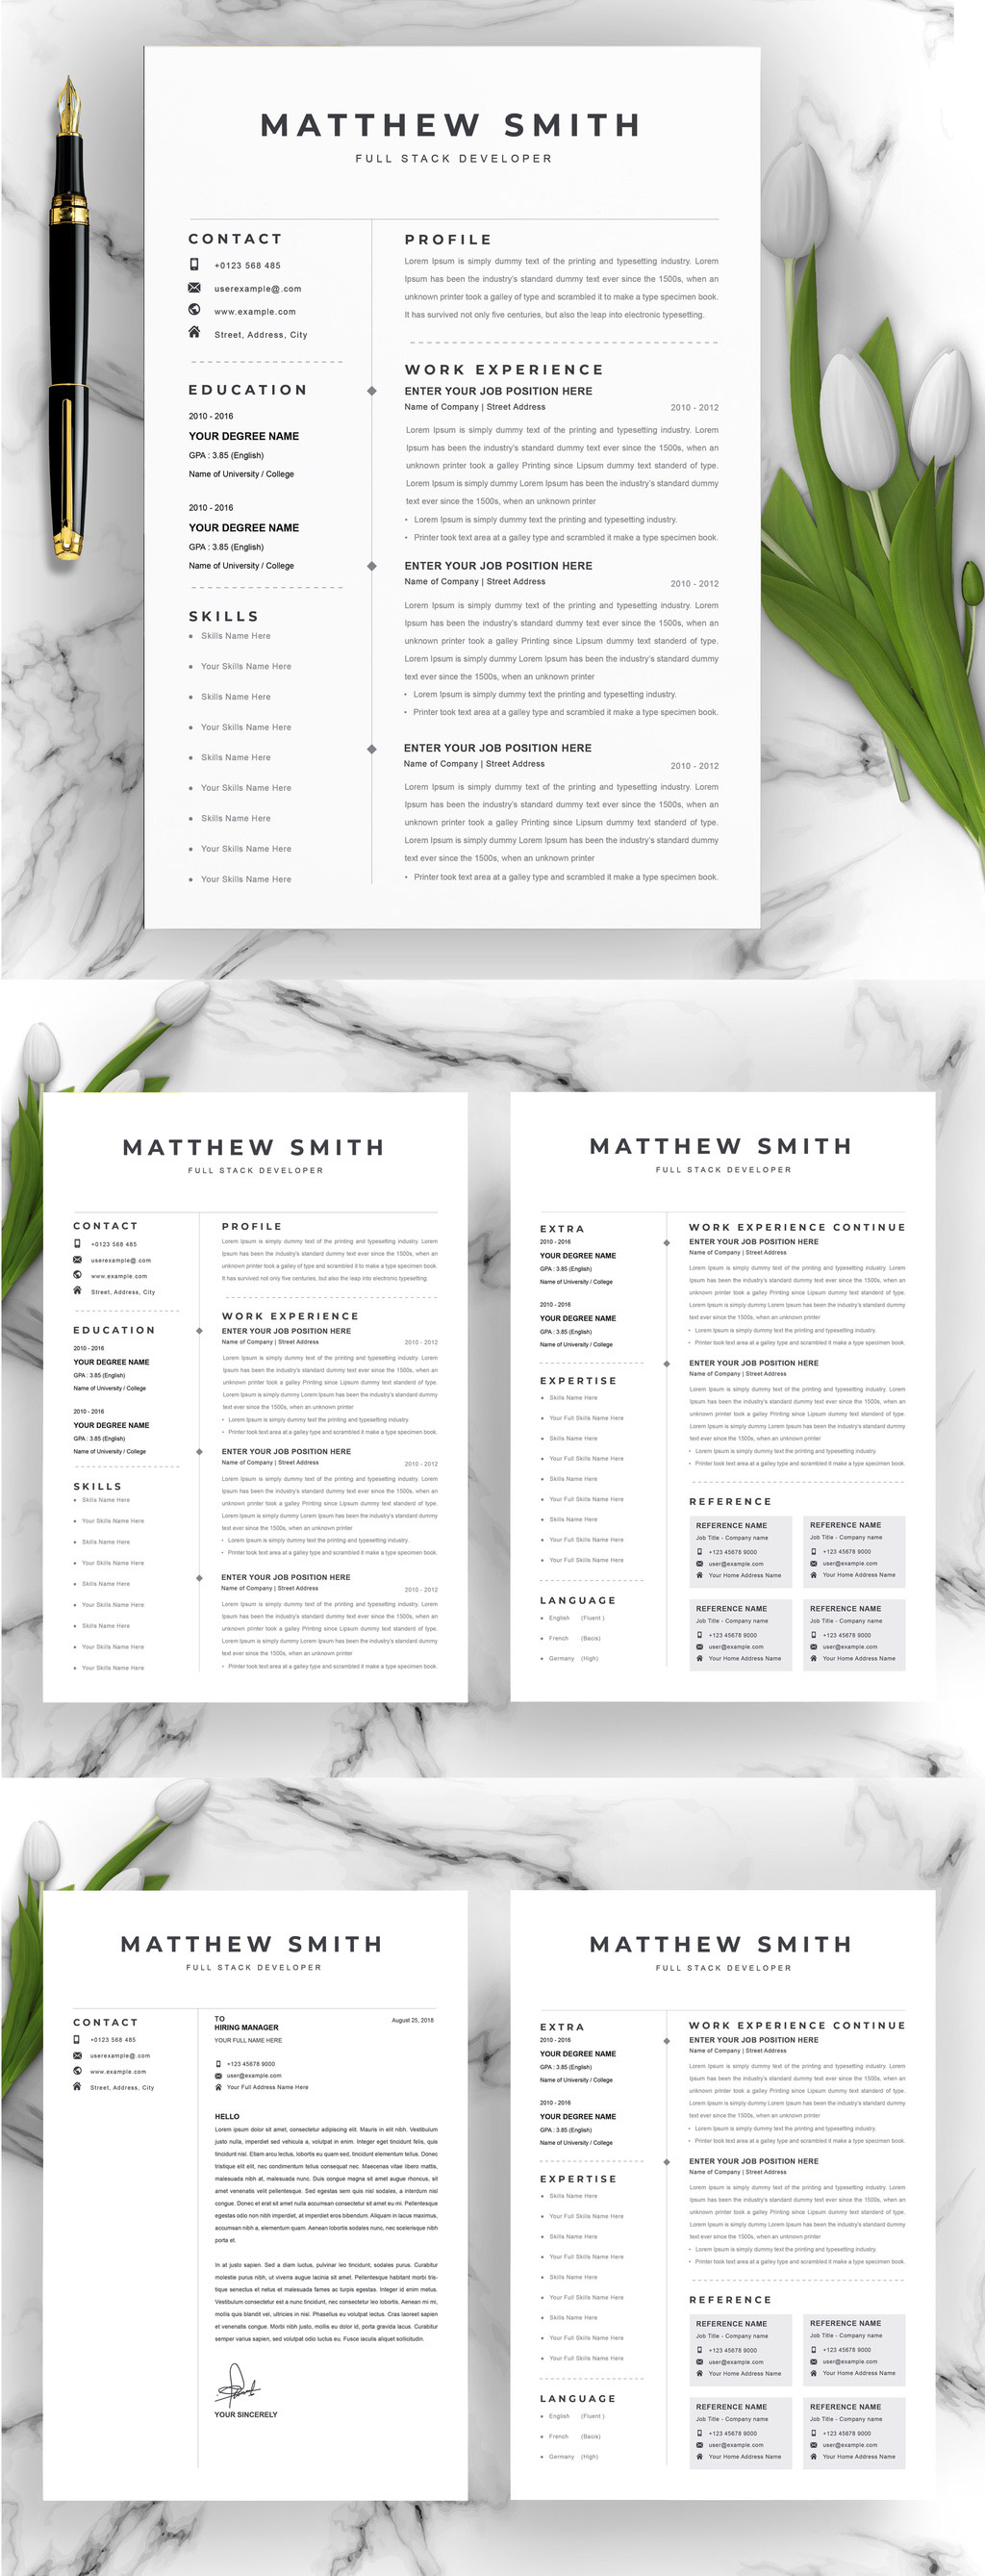 Simple Resume Adobe InDesign Template